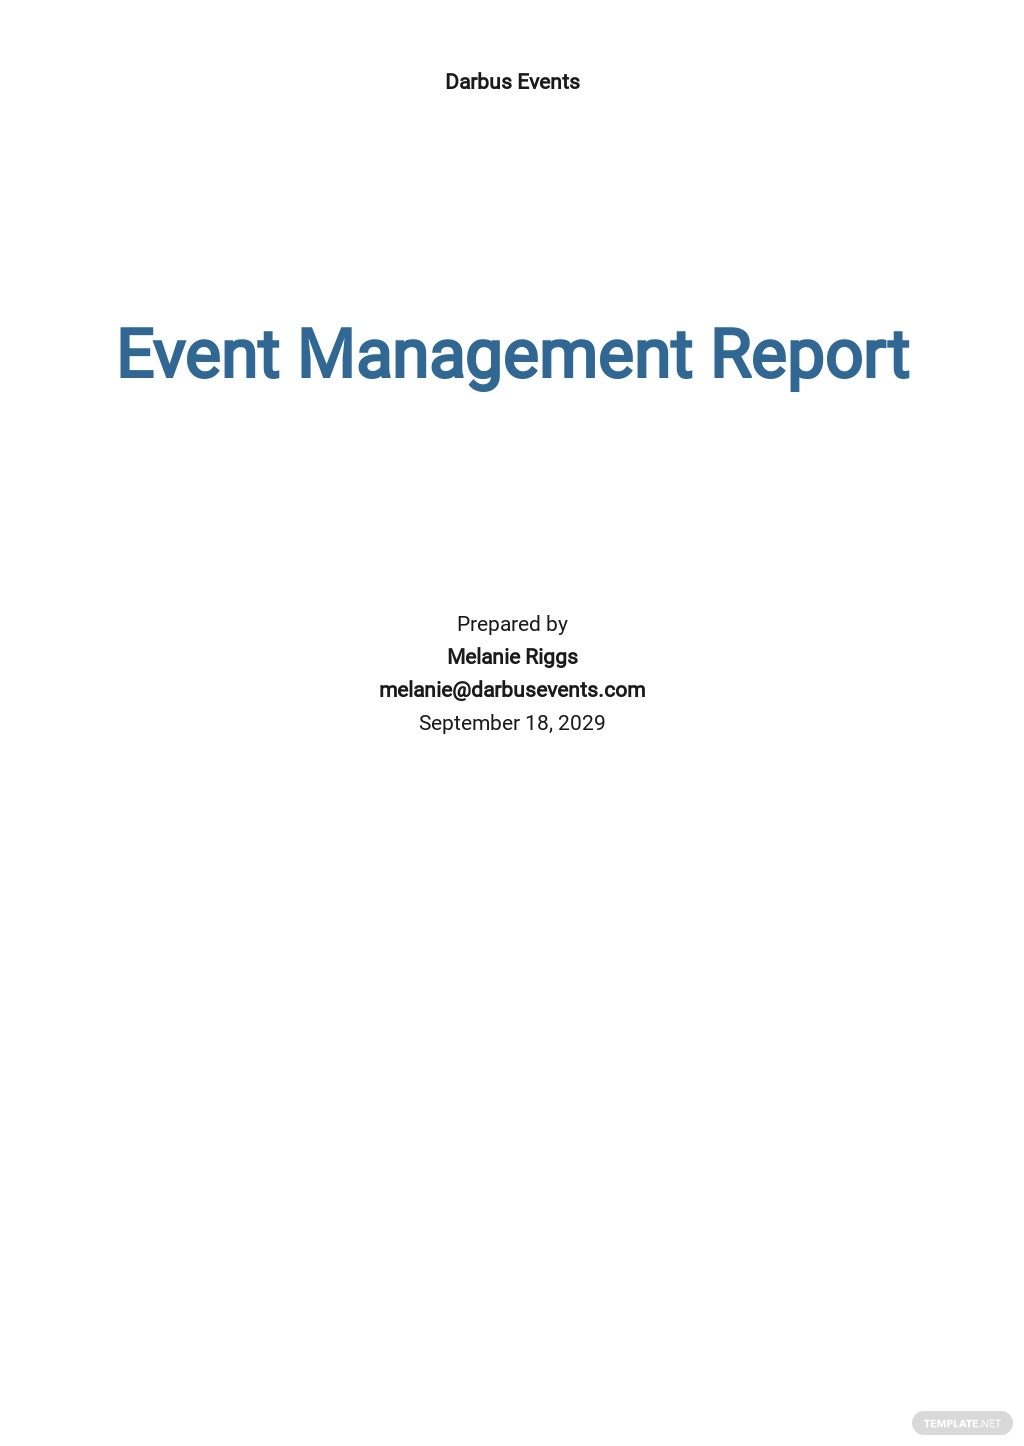 Free Event Management Report Template.jpe